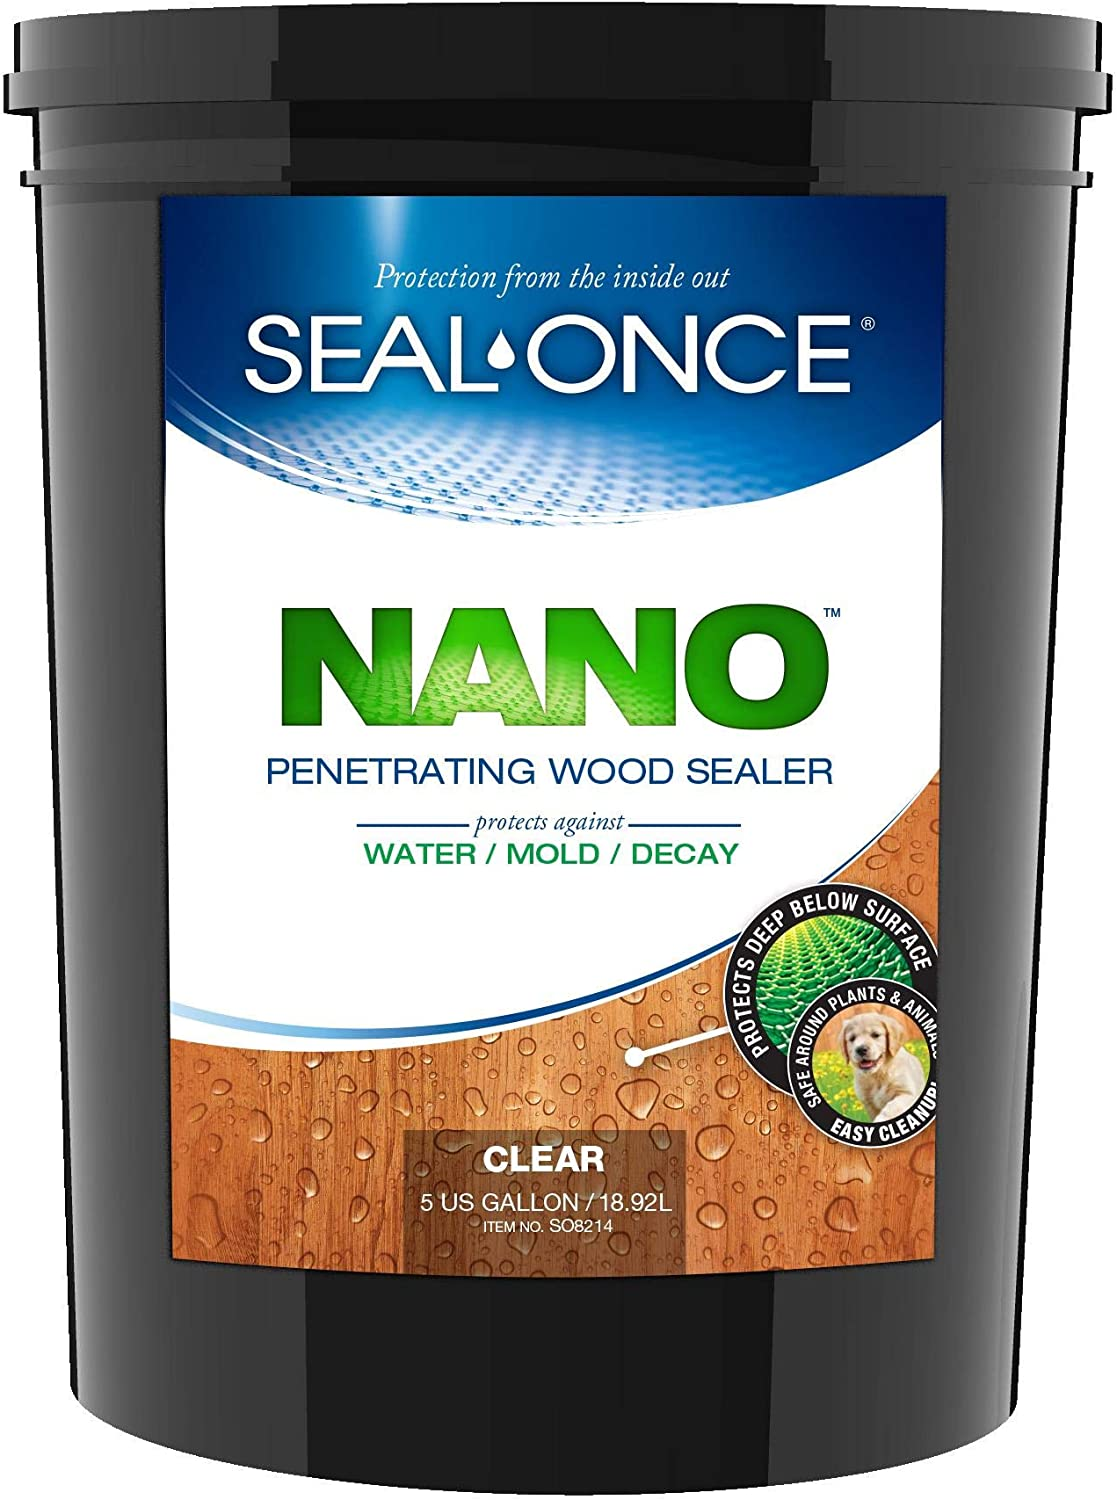 SEAL-ONCE NANO Penetrating Wood Sealer & Stain - 5 Gallon. Water-based, Low-VOC waterproofer for fences, siding, beams, outdoor furniture & log homes.